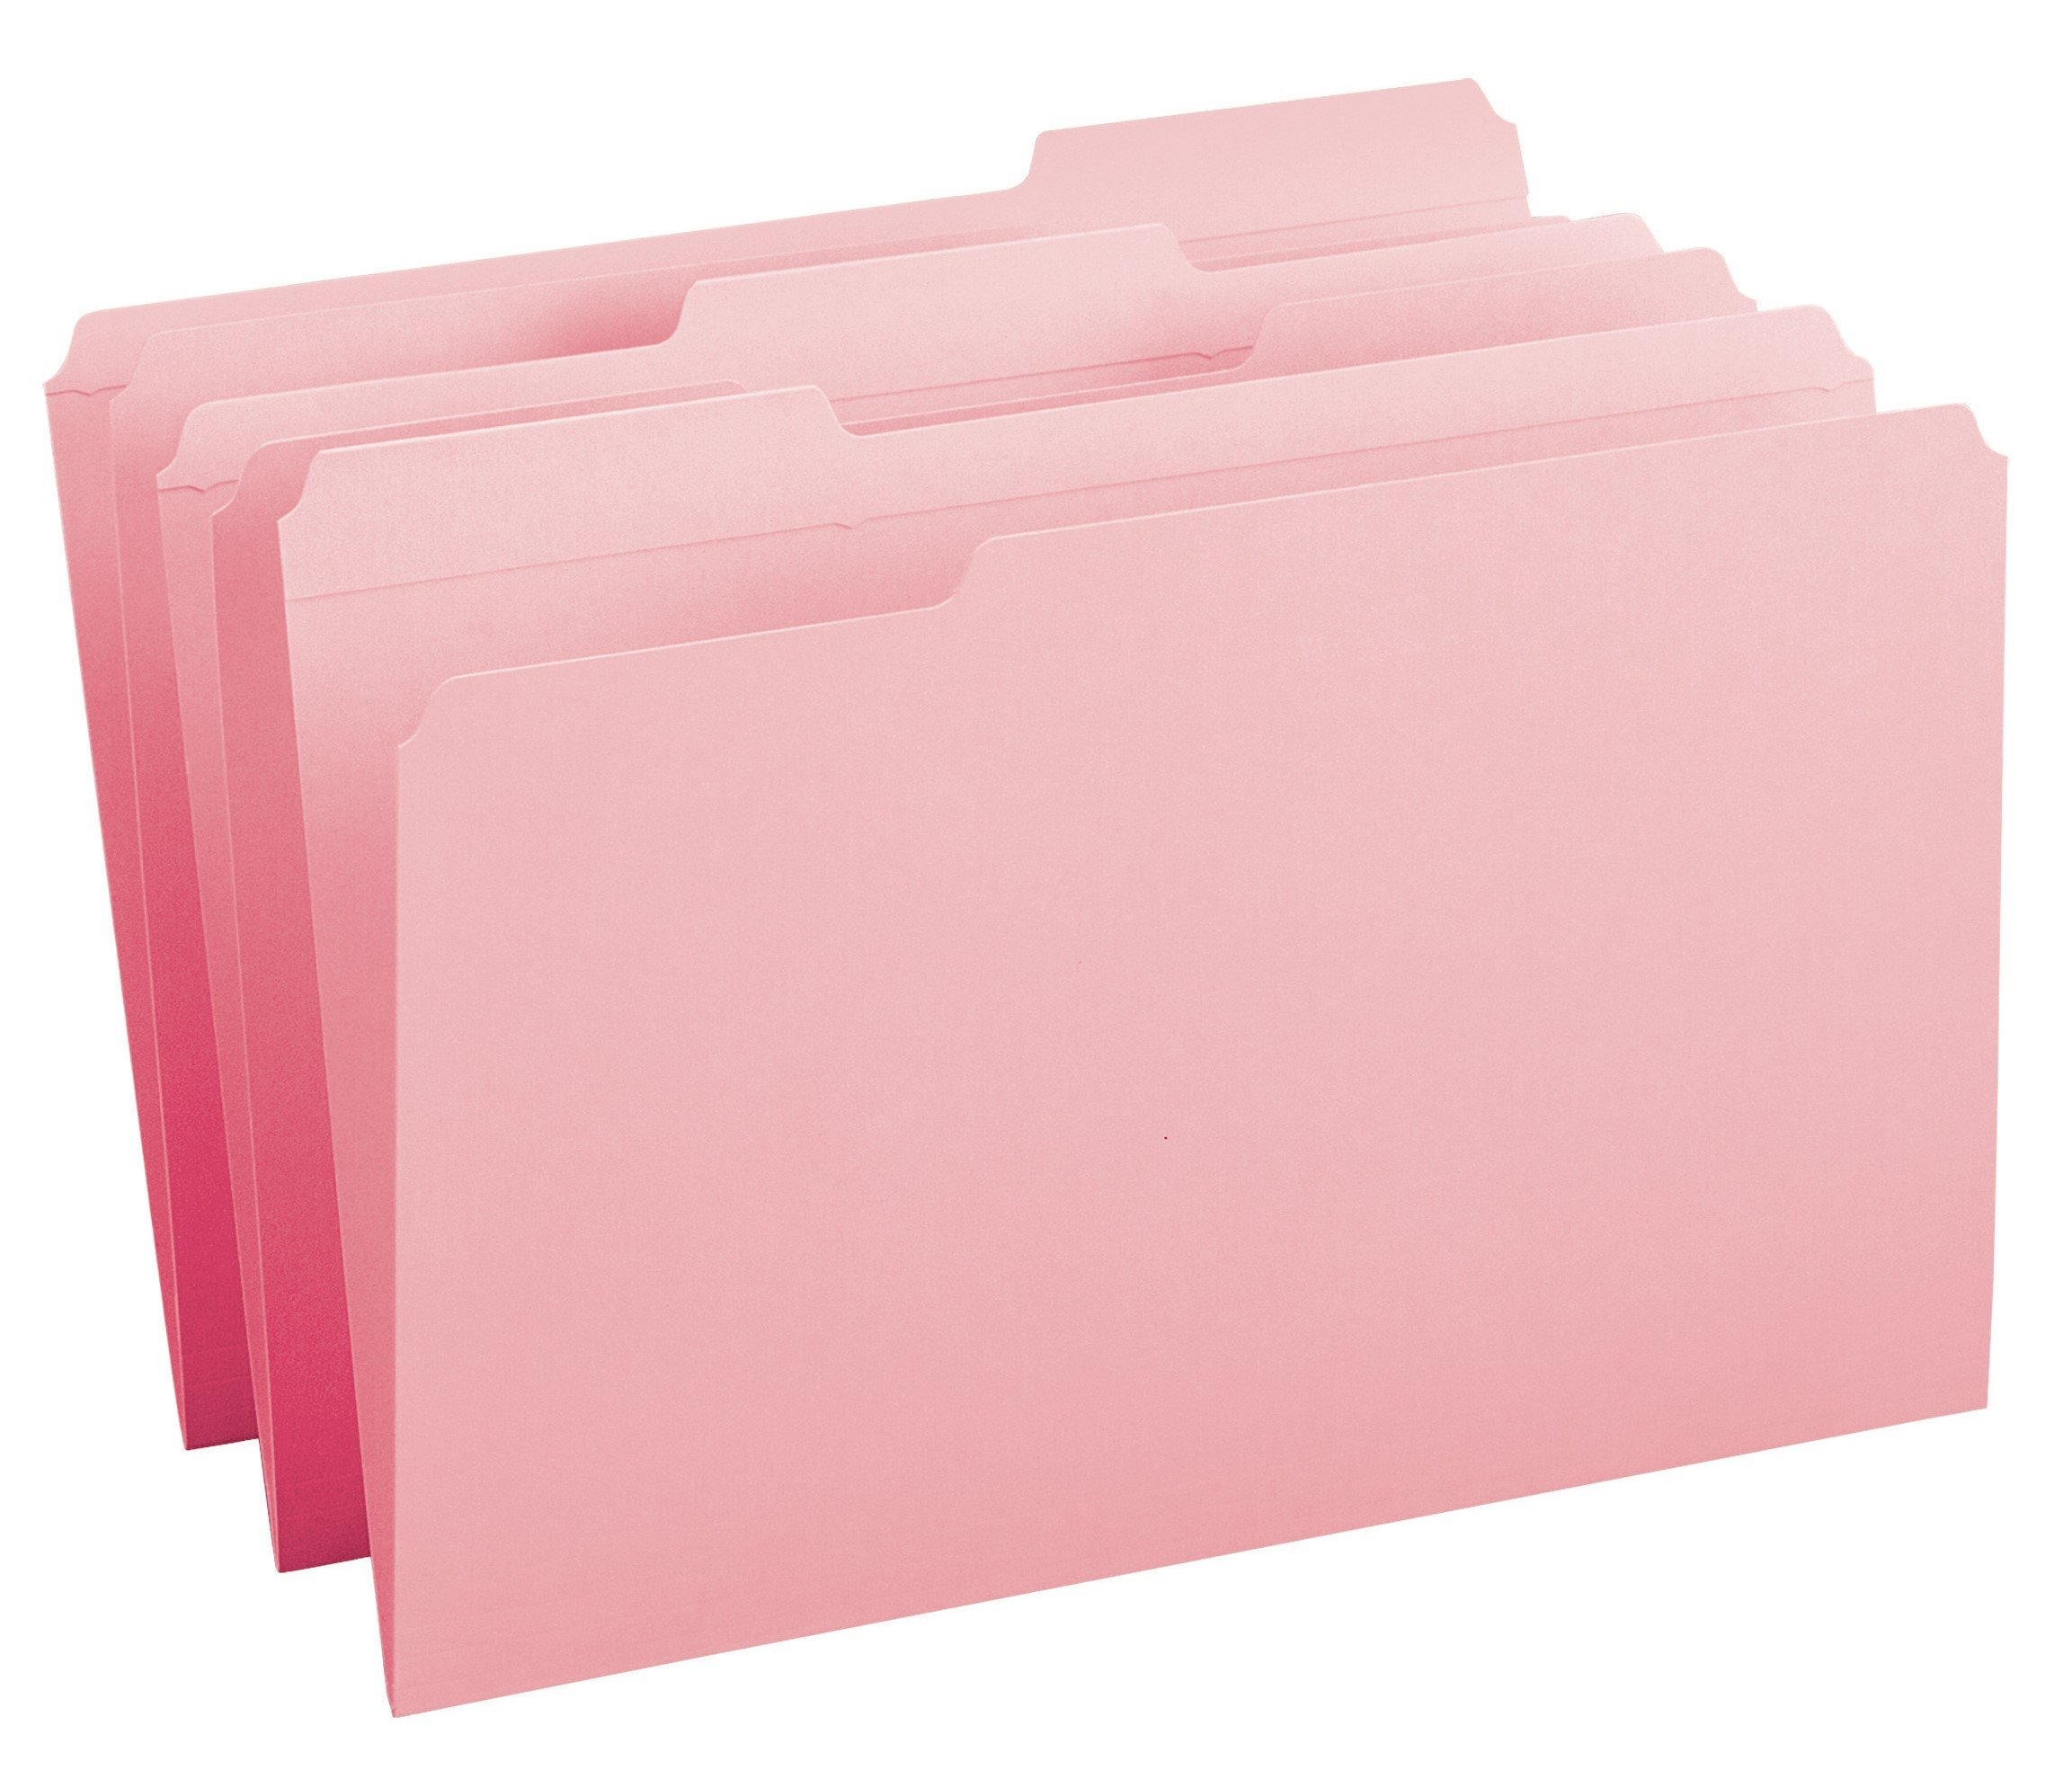 Smead File Folder, Reinforced 1/3-Cut Tab, Legal Size, Pink, 100 per Box (17634) by Smead